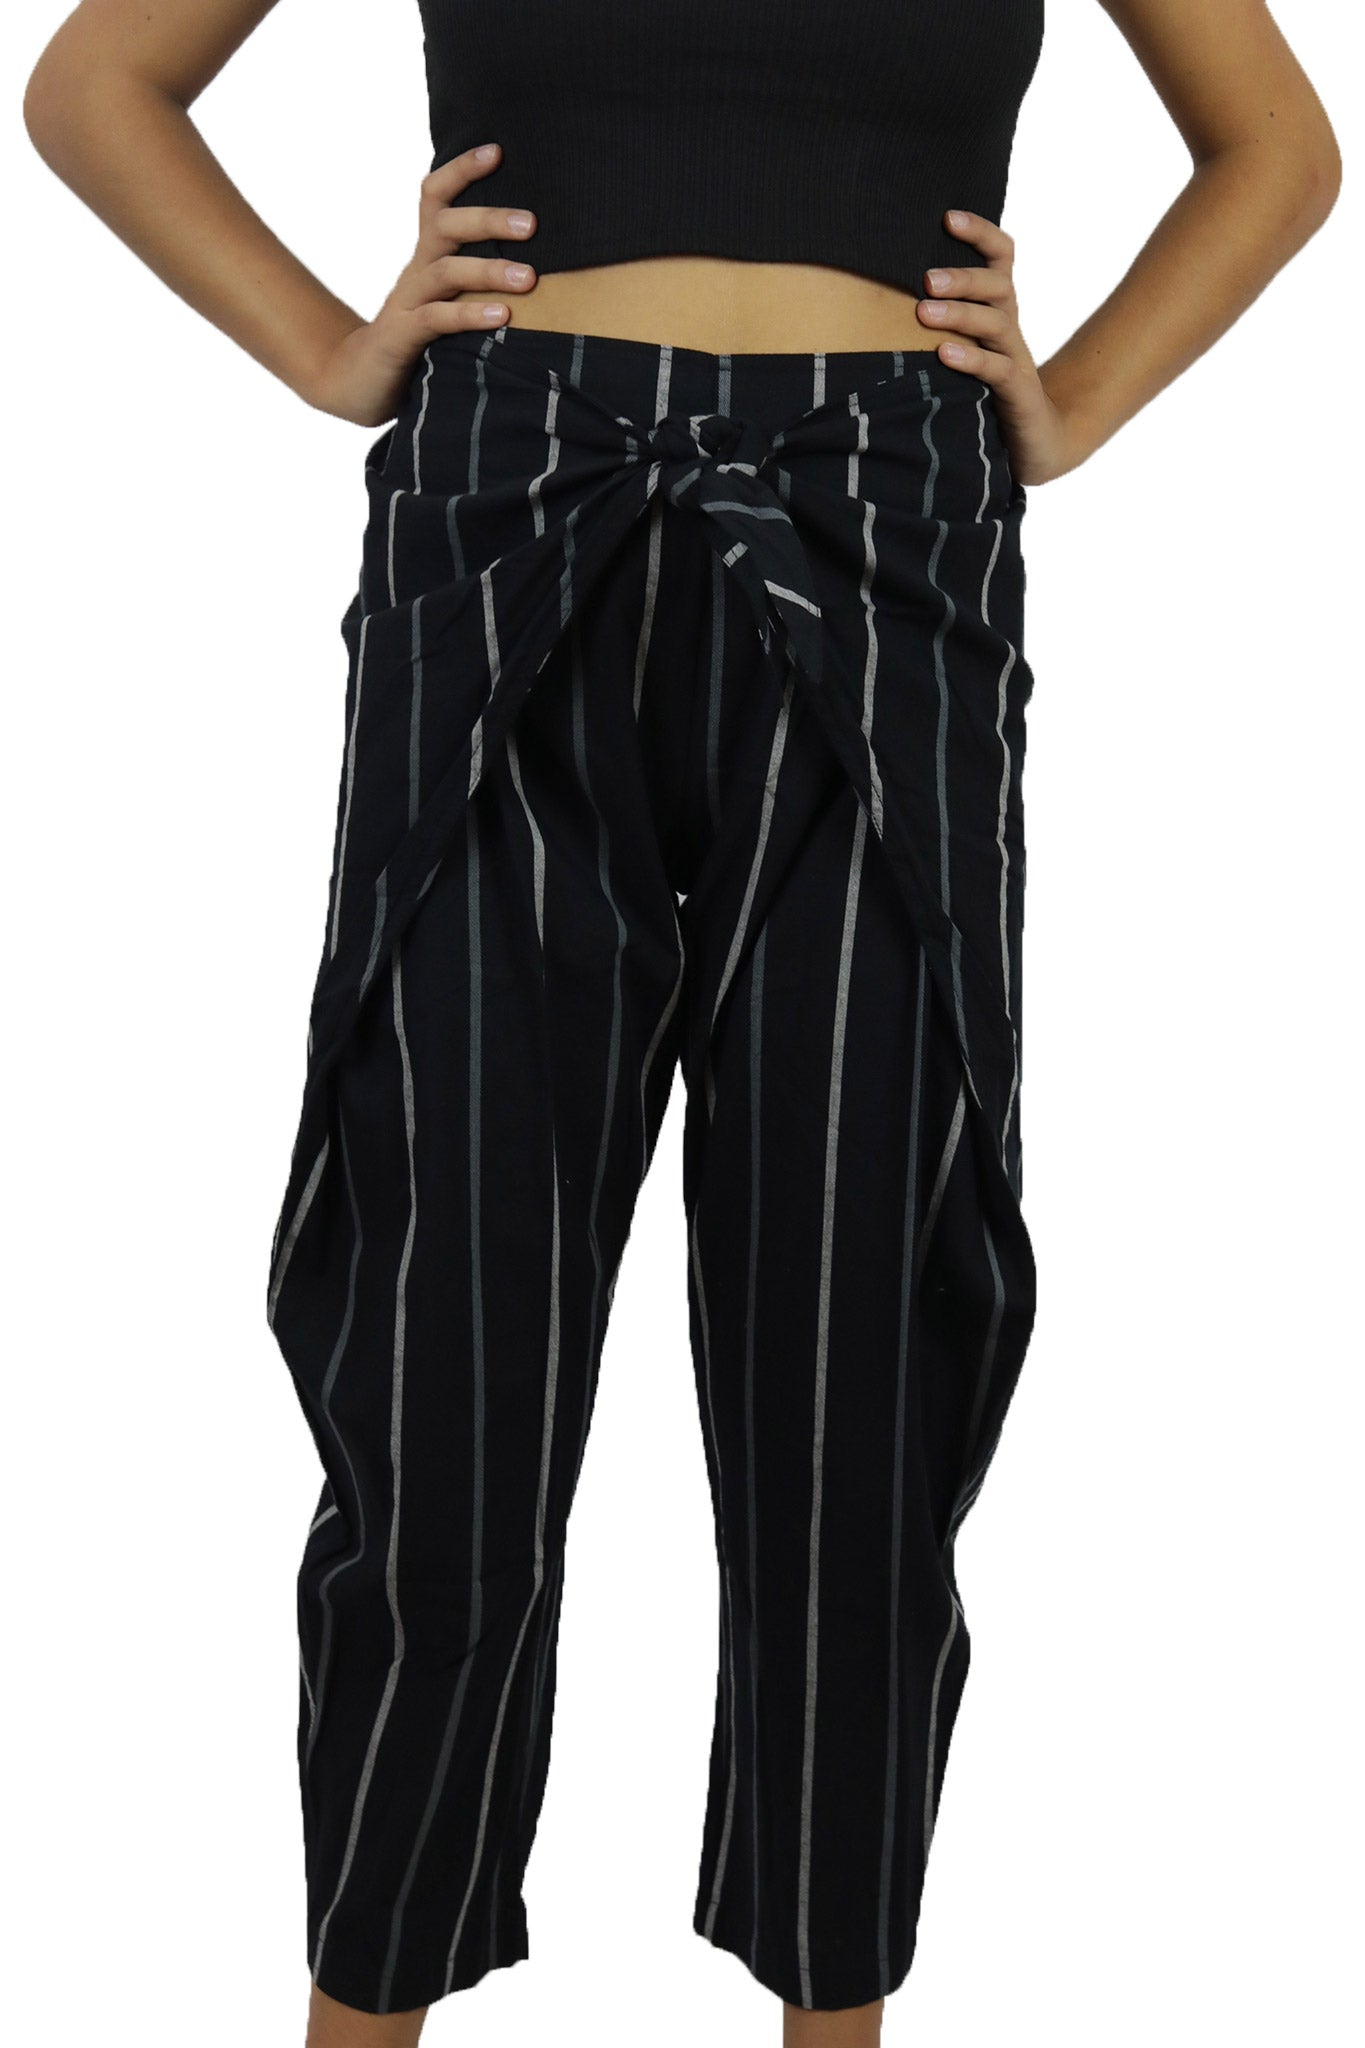 Scot Yard Pants